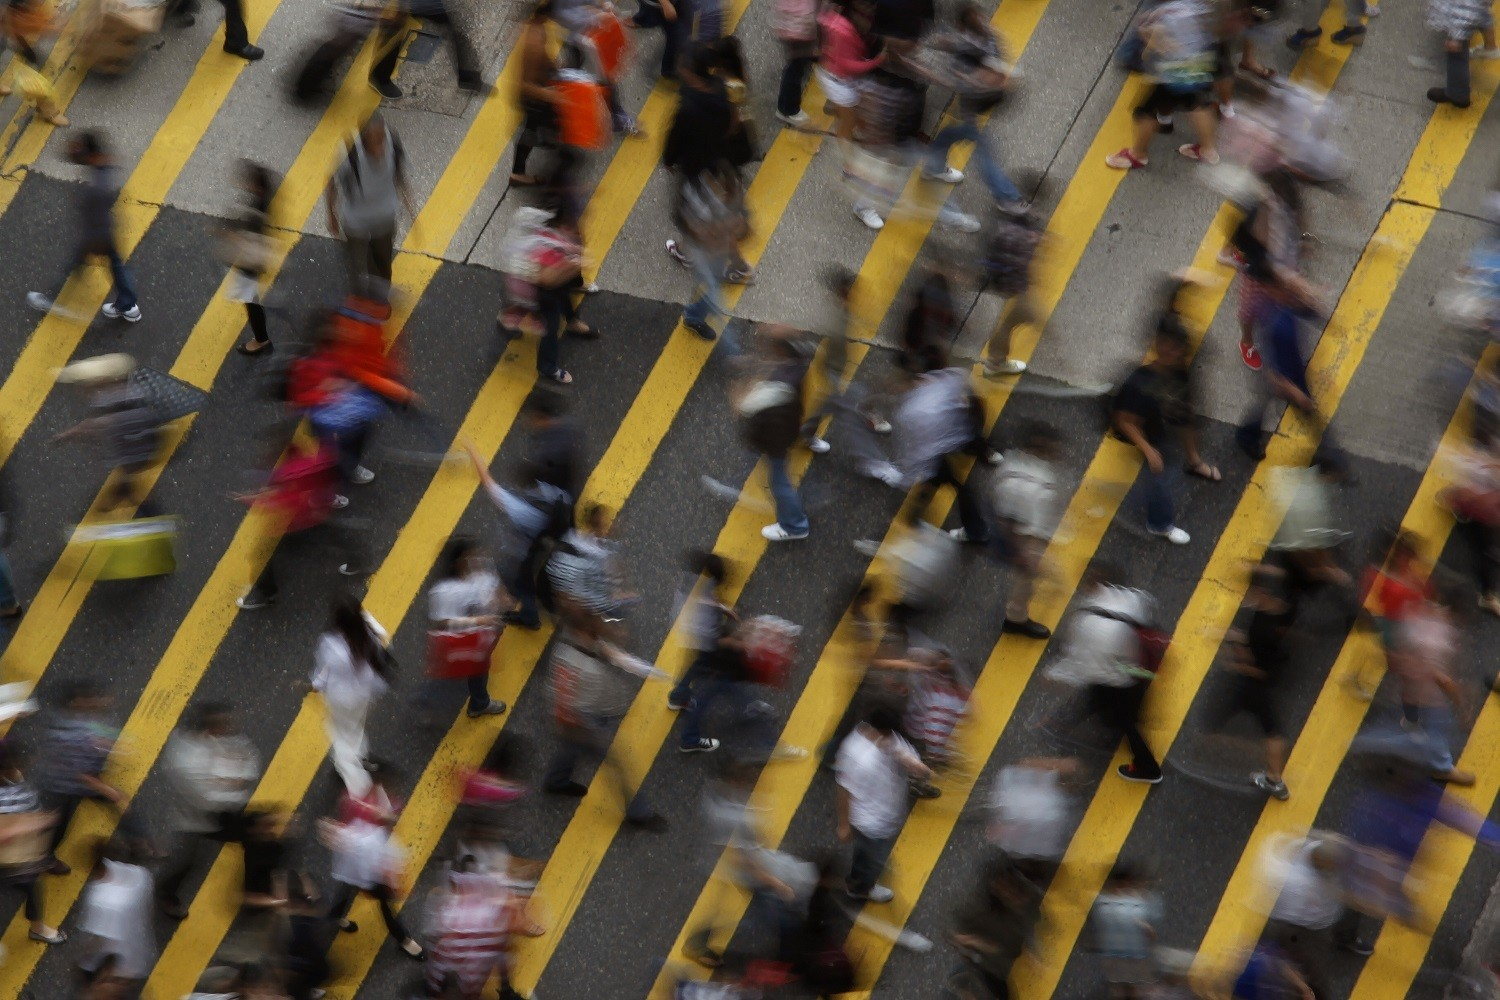 ATTENTION EDITORS - IMAGE 1 OF 22 OF PICTURE PACKAGE '7 BILLION, 7 STORIES - OVERCROWDED IN HONG KONG. SEARCH 'MONG KOK' FOR ALL IMAGES - People cross a street in Mong Kok district in Hong Kong, October 4, 2011. Mong Kok has the highest population density in the world, with 130,000 in one square kilometre. The world's population will reach seven billion on 31 October 2011, according to projections by the United Nations, which says this global milestone presents both an opportunity and a challenge for the planet. While more people are living longer and healthier lives, says the U.N., gaps between rich and poor are widening and more people than ever are vulnerable to food insecurity and water shortages.   Picture taken October 4, 2011.   REUTERS/Bobby Yip   (CHINA - Tags: SOCIETY) - RTR2SQJP